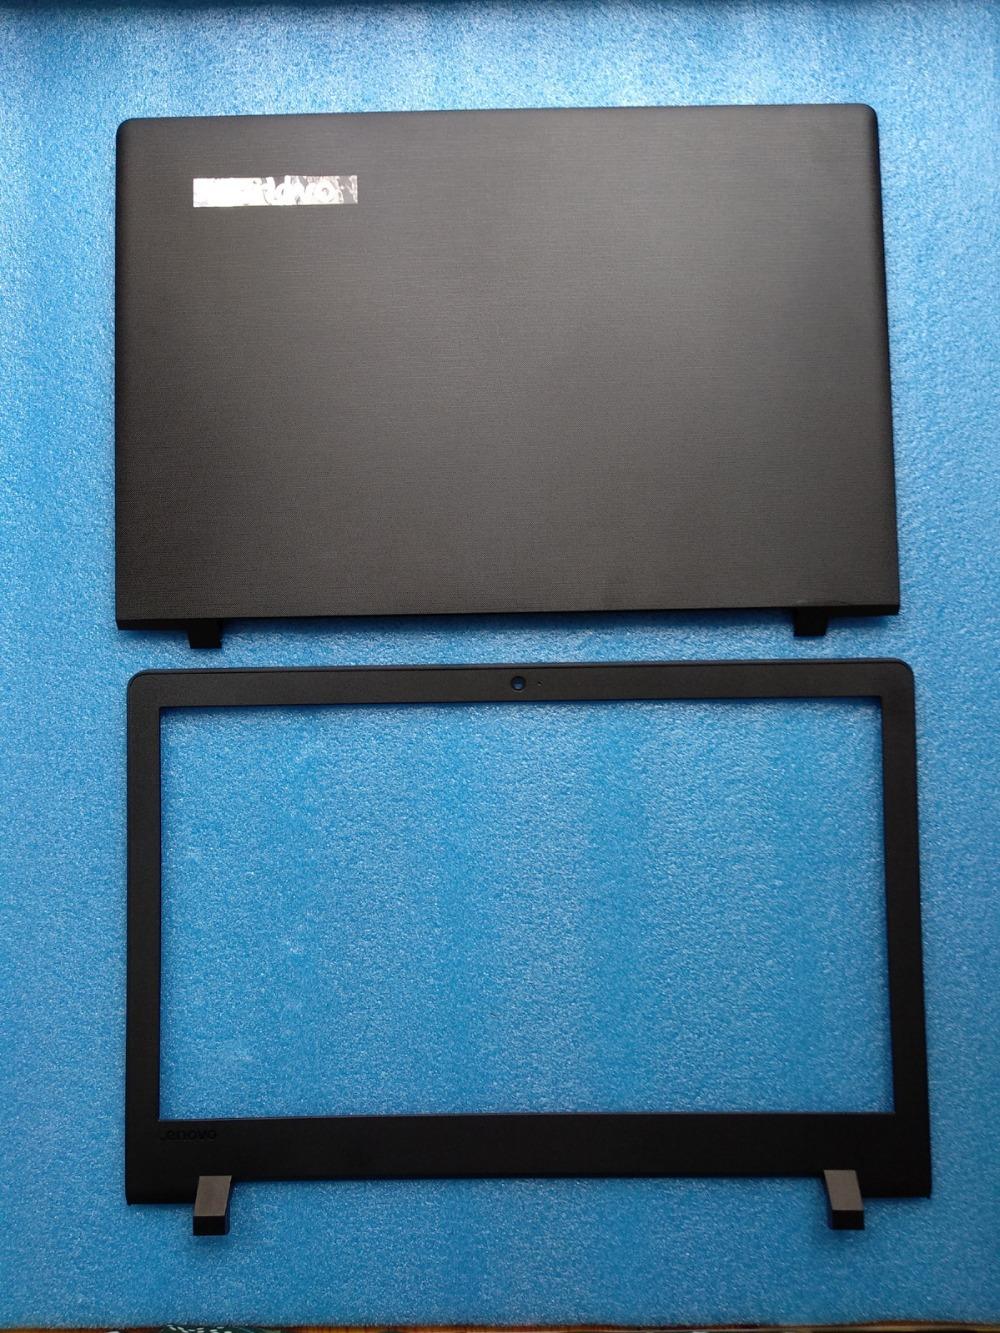 New Original Lenovo IdeaPad 110-15ISK Laptop LCD Rear Back + LCD Front Bezel Cover new original lenovo ideapad y500 y510 y510p 15 6 lcd rear back cover 90202004 am0rr00040